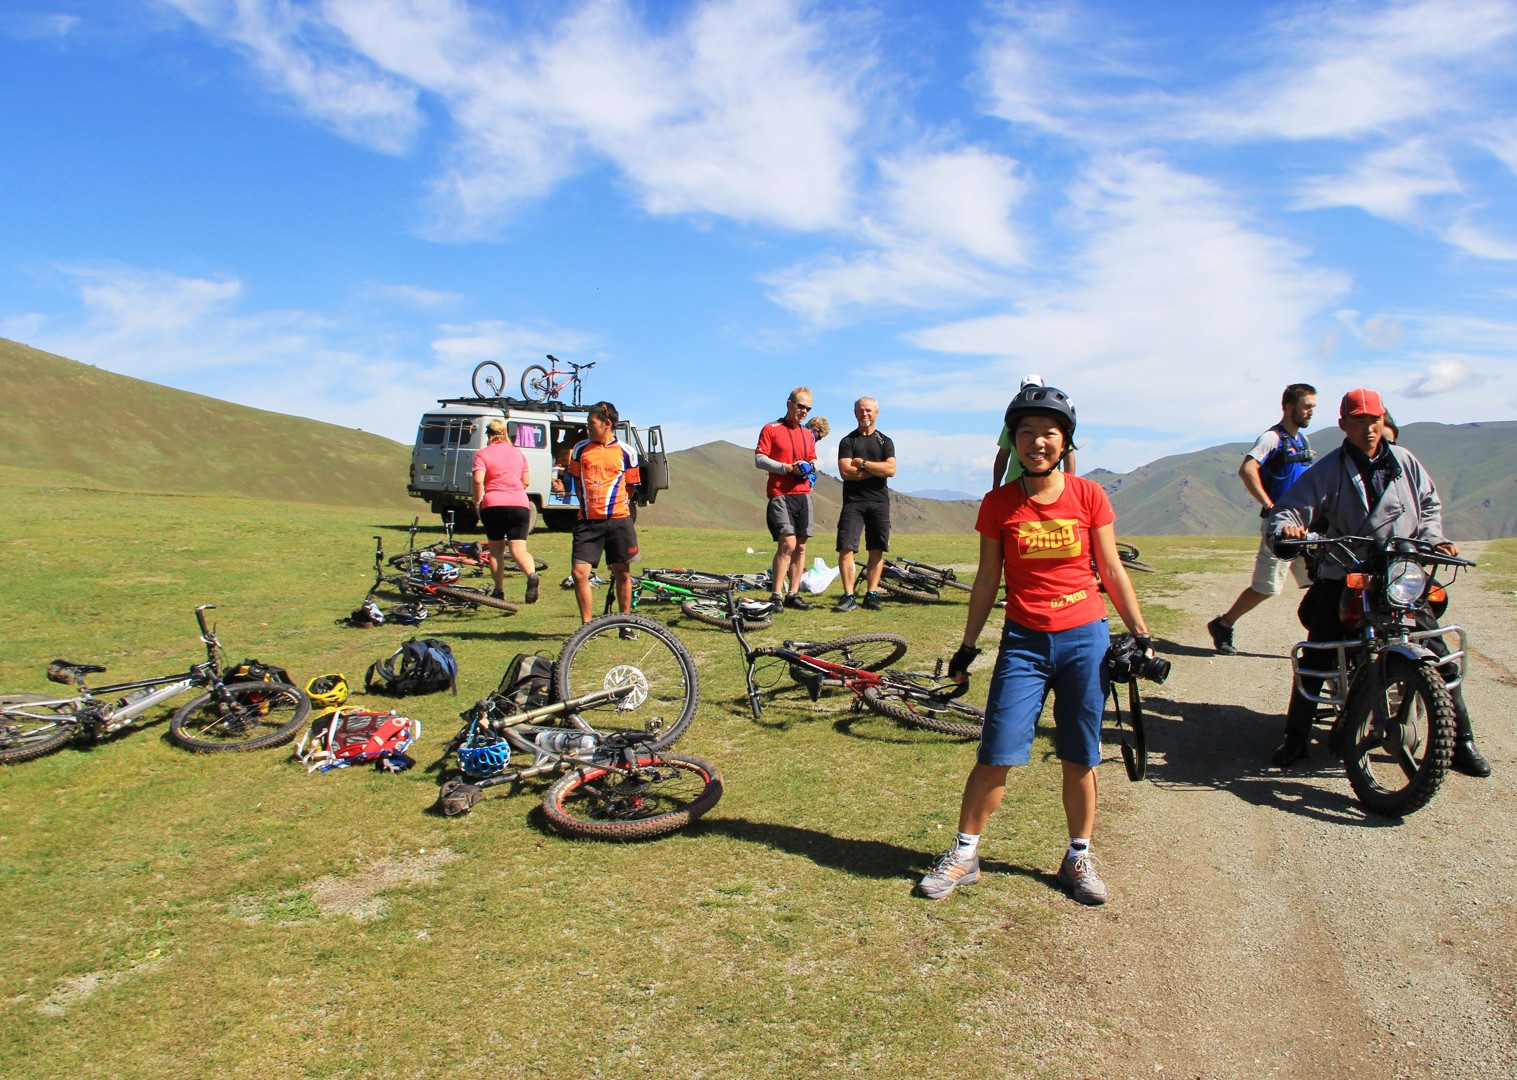 cycling-holiday-in-mongolia-orkhon-falls.jpg - NEW! Mongolia - Route of the Nomads - Cycling Adventures